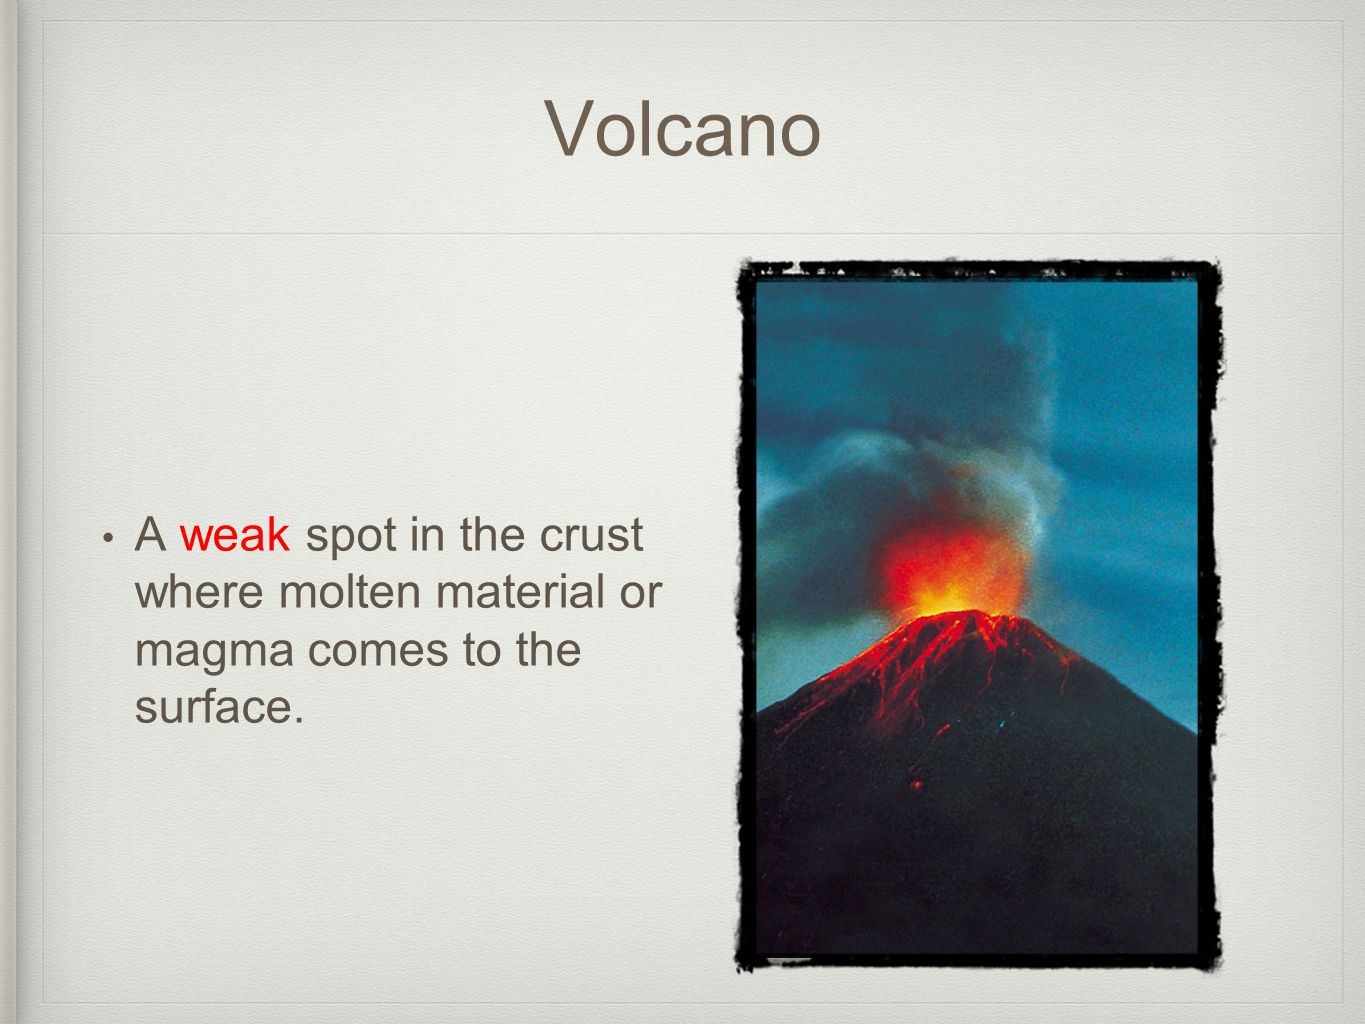 Volcano A weak spot in the crust where molten material or magma comes to the surface.